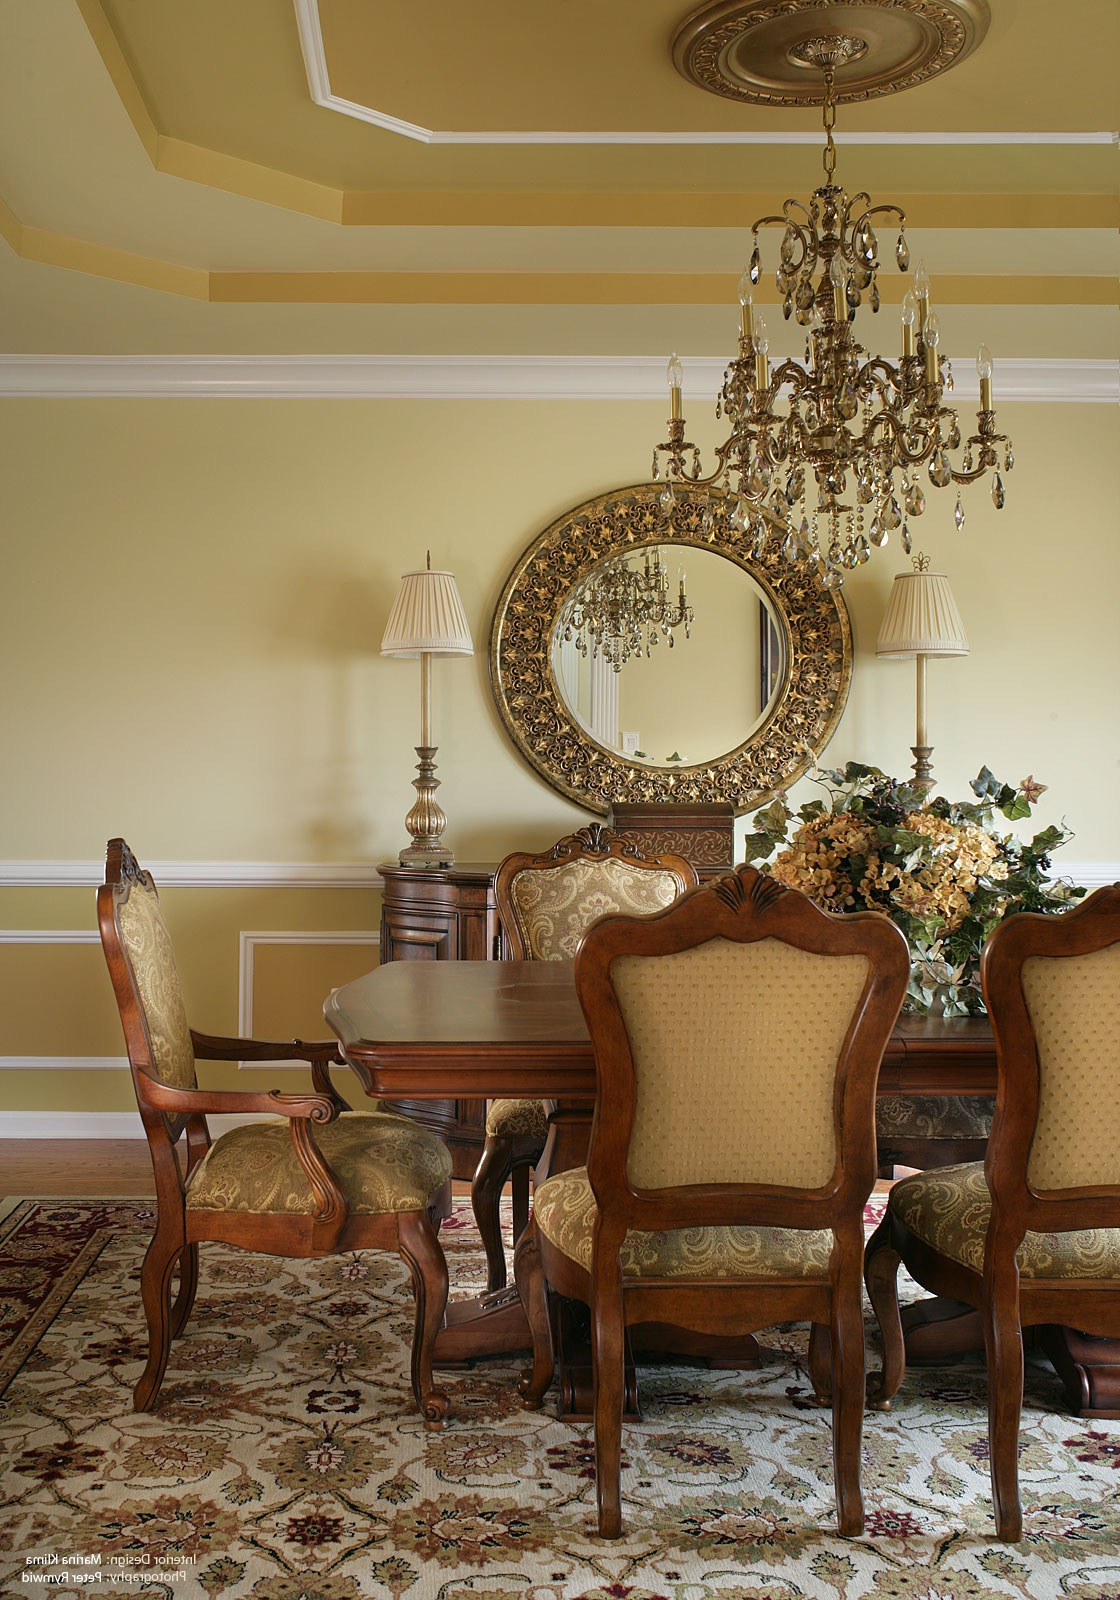 Classic Chandelier Decor For Classic Dining Room (Image 6 of 15)